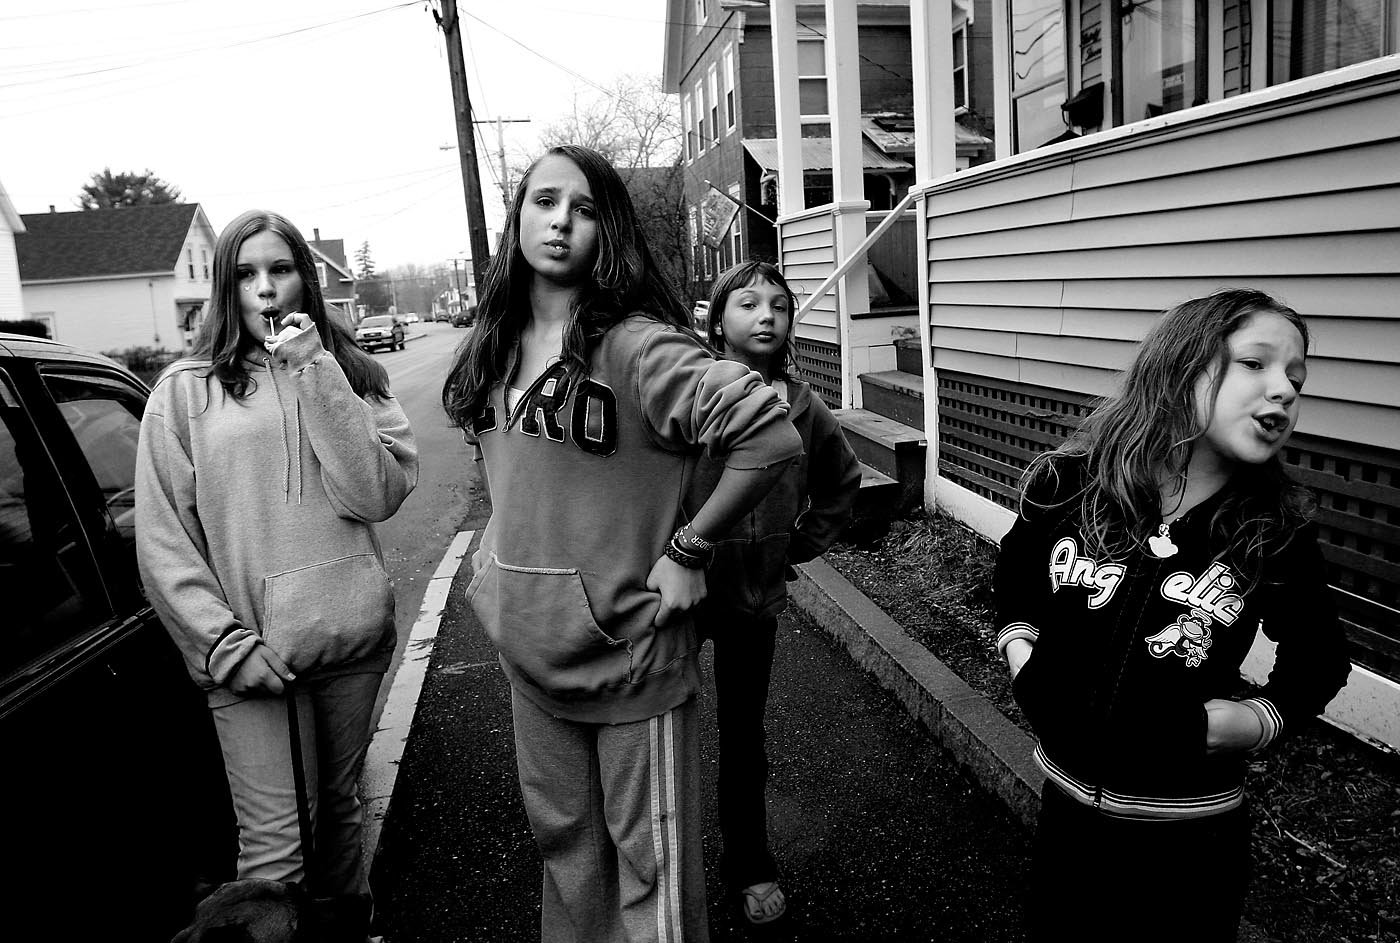 A group of neighborhood girls watch for the boys to return on their bikes while hanging out on Walker Street in Concord during spring vacation.